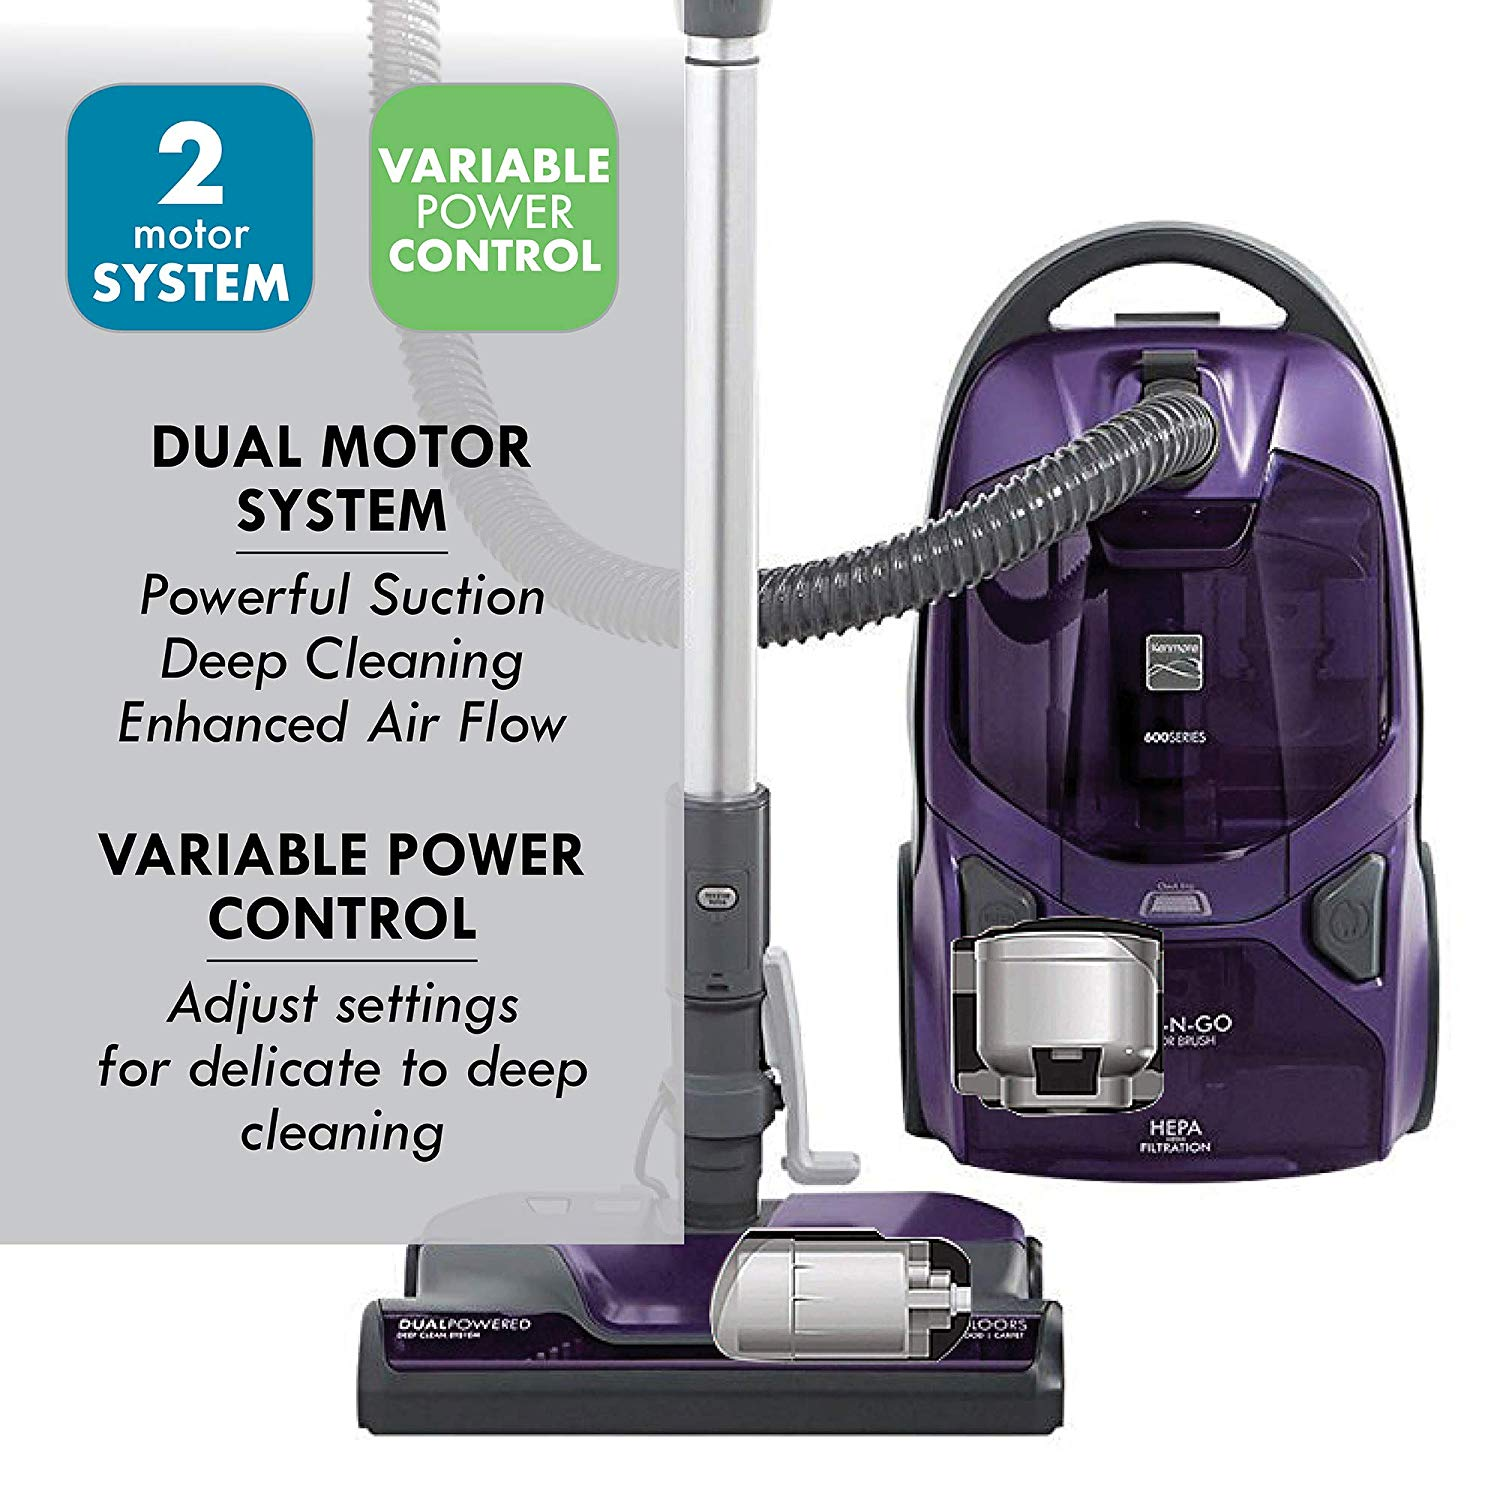 Kenmore 600 Series Friendly Lightweight Bagged Canister Vacuum with Pet Powermate, Pop-N-Go Brush, 2 motors, HEPA Aluminum Telescoping Wand, Retractable Cord, and 3 Cleaning Tools